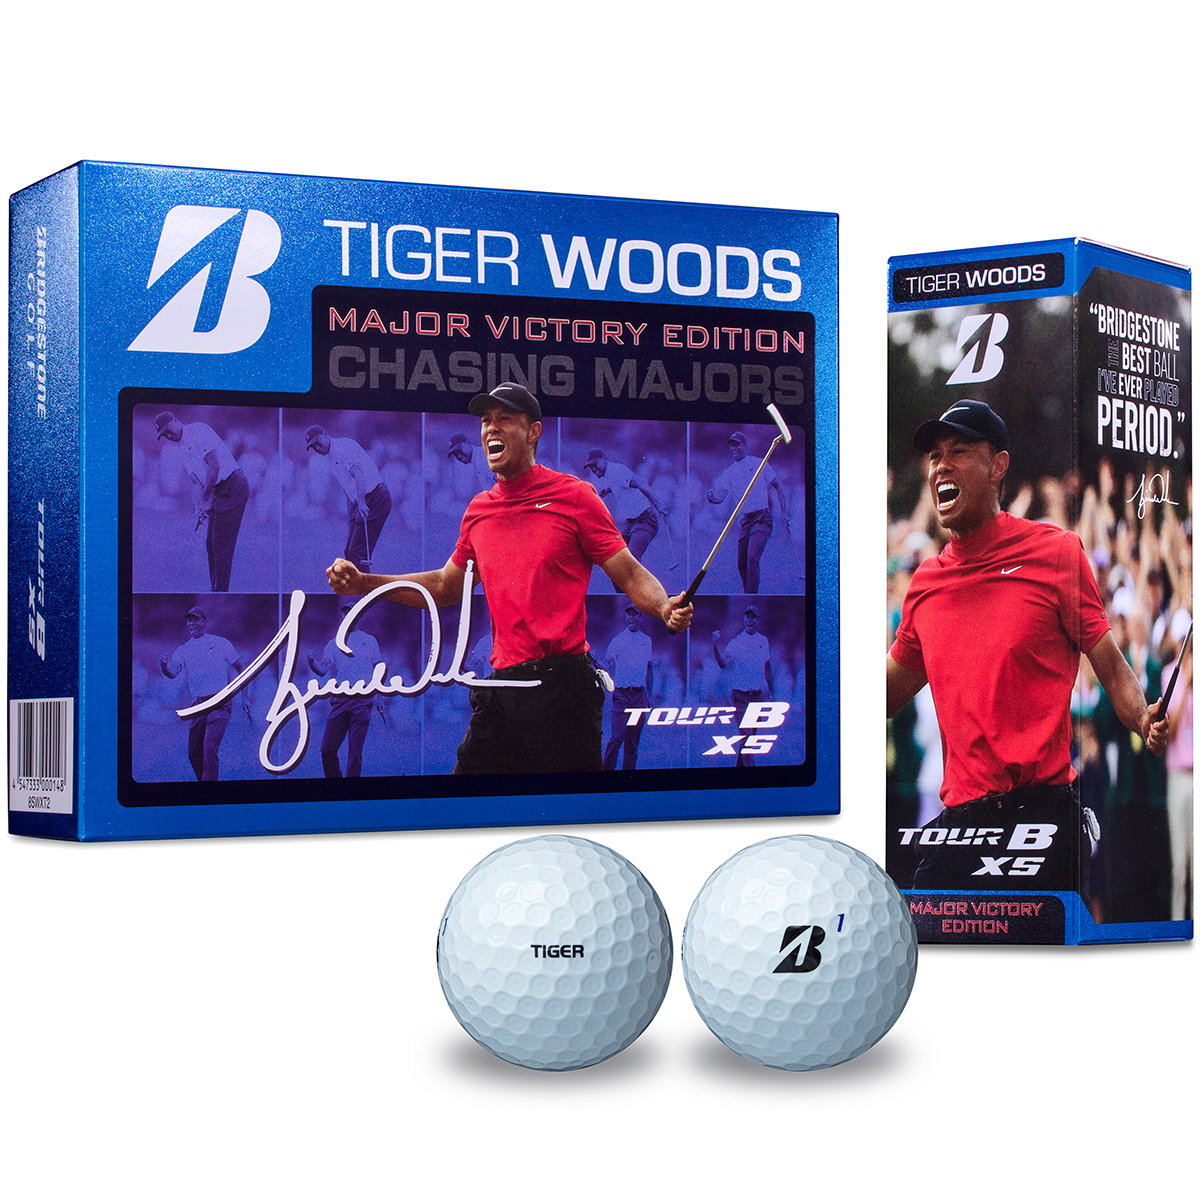 TOUR B XS TIGER WOODS MAJOR VICTORY EDITION ボール